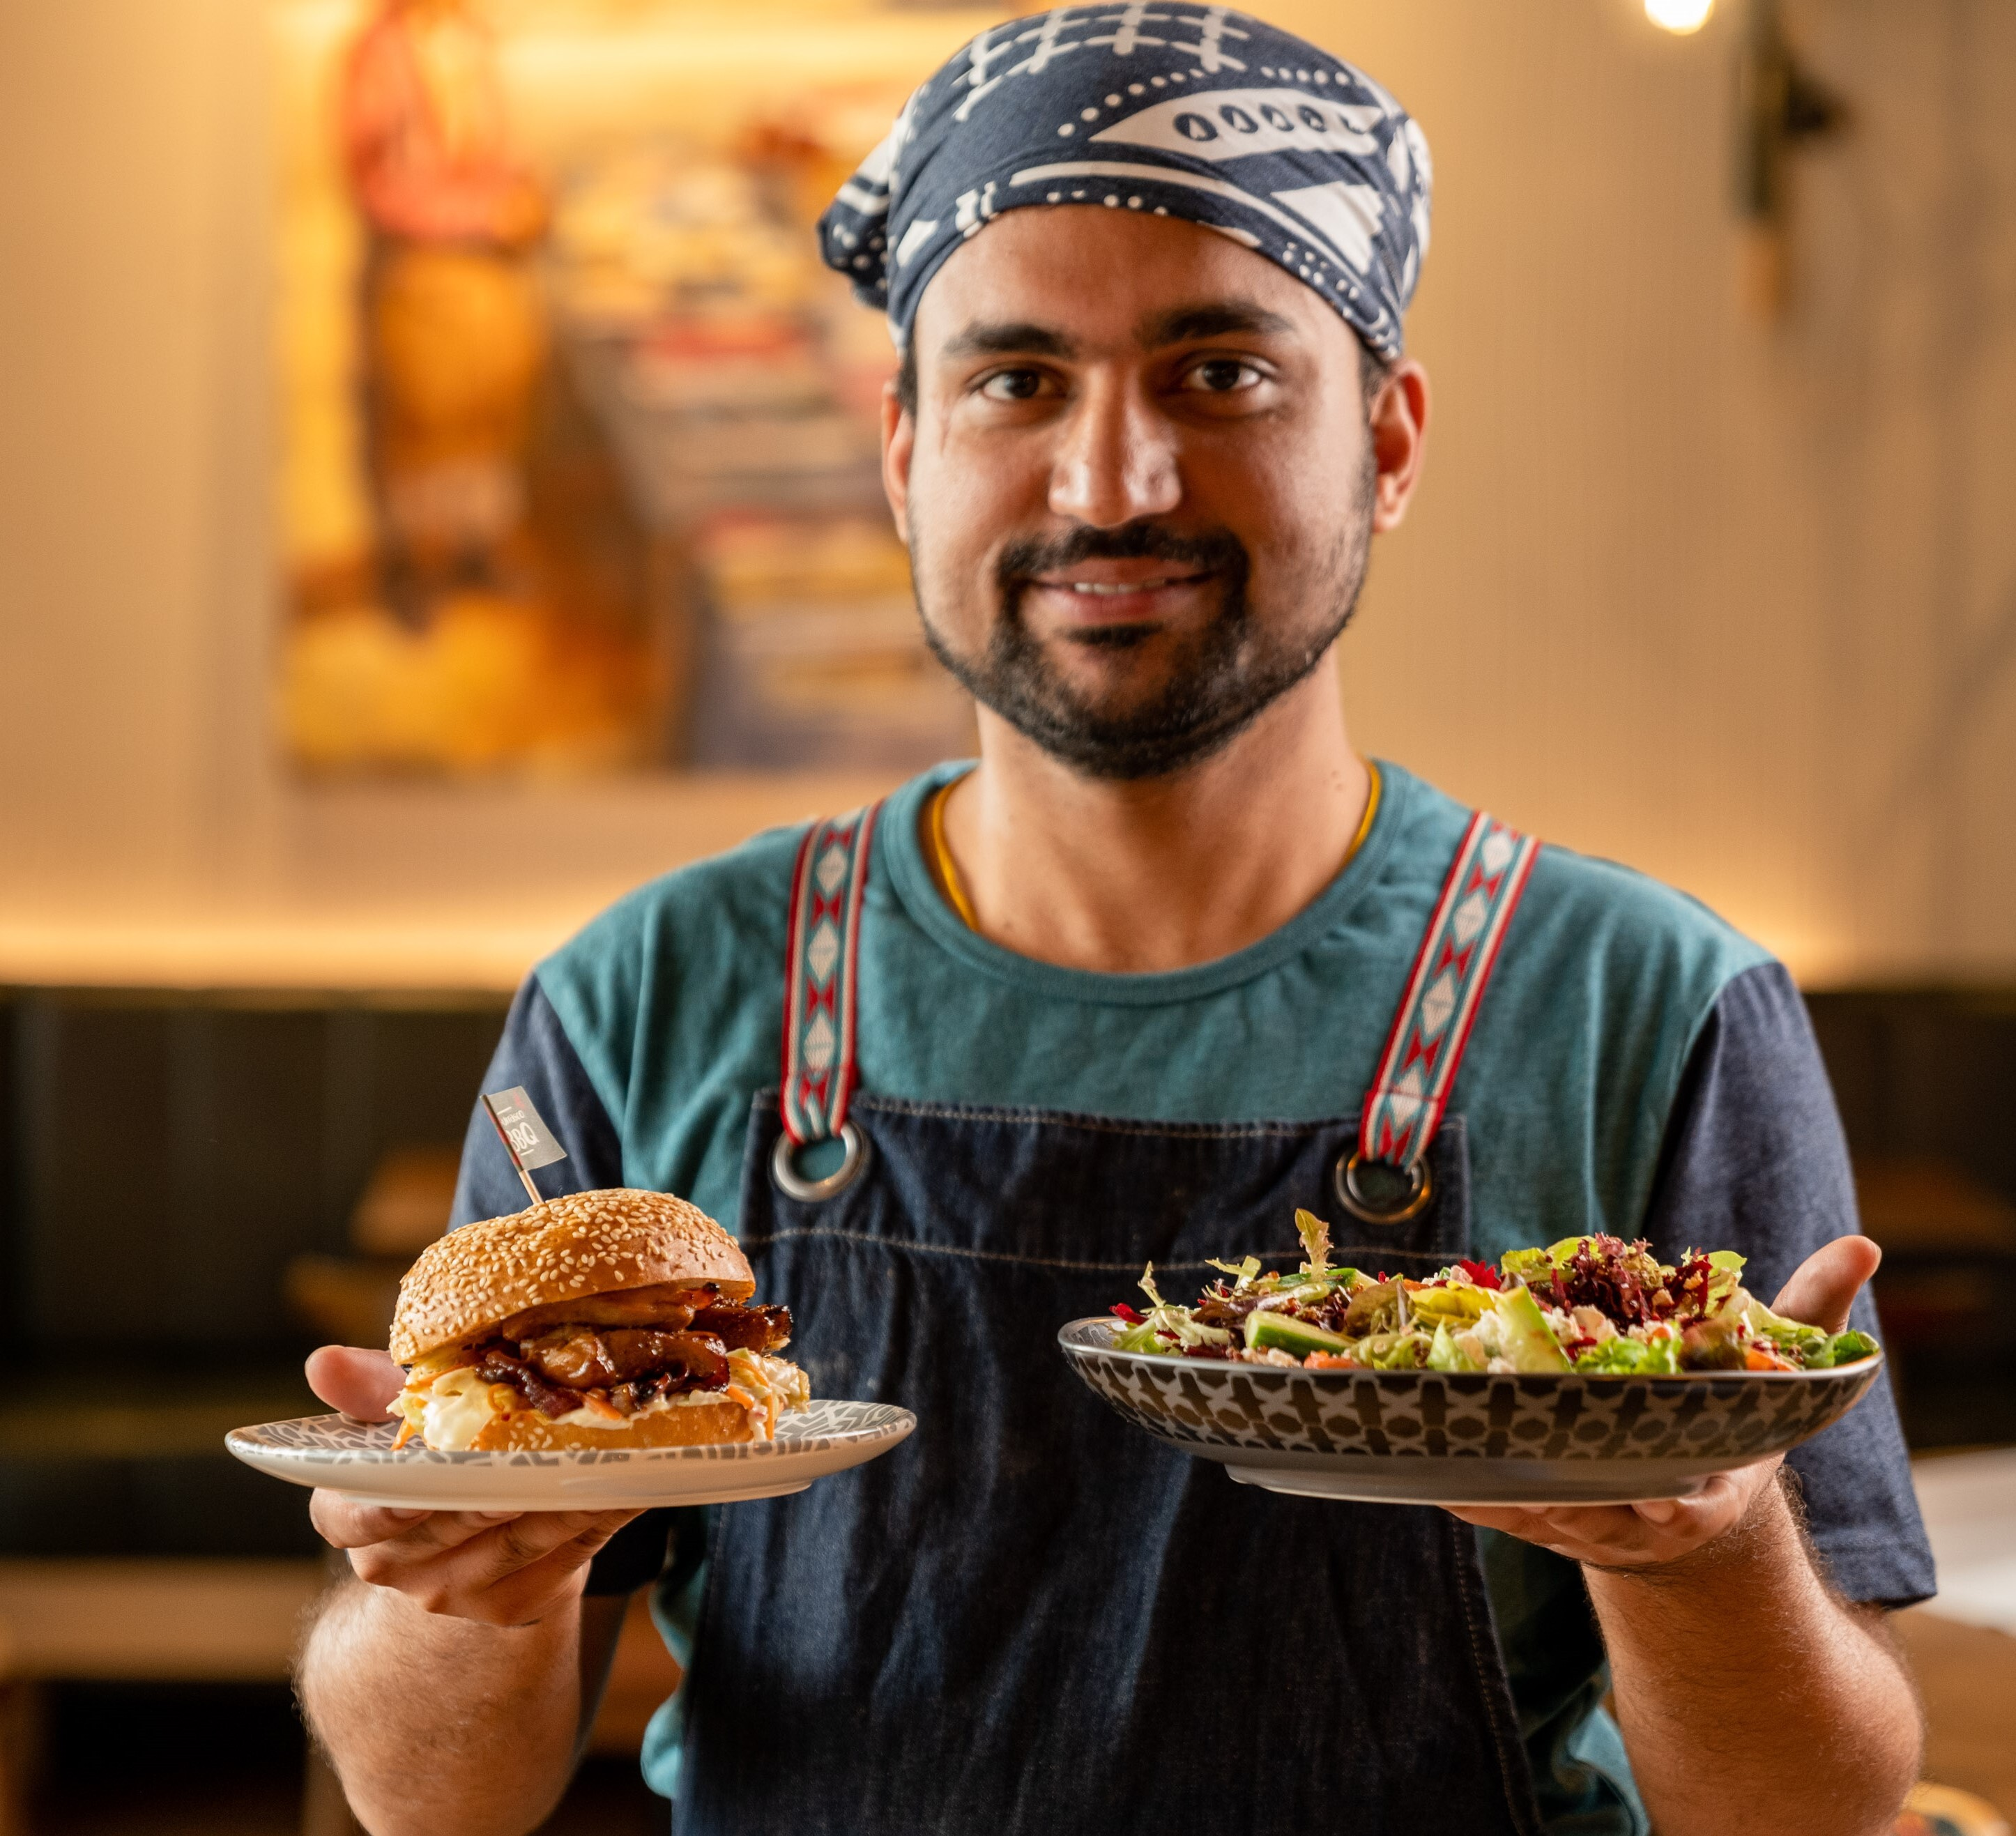 A Nando's staff member carrying a burger and a salad